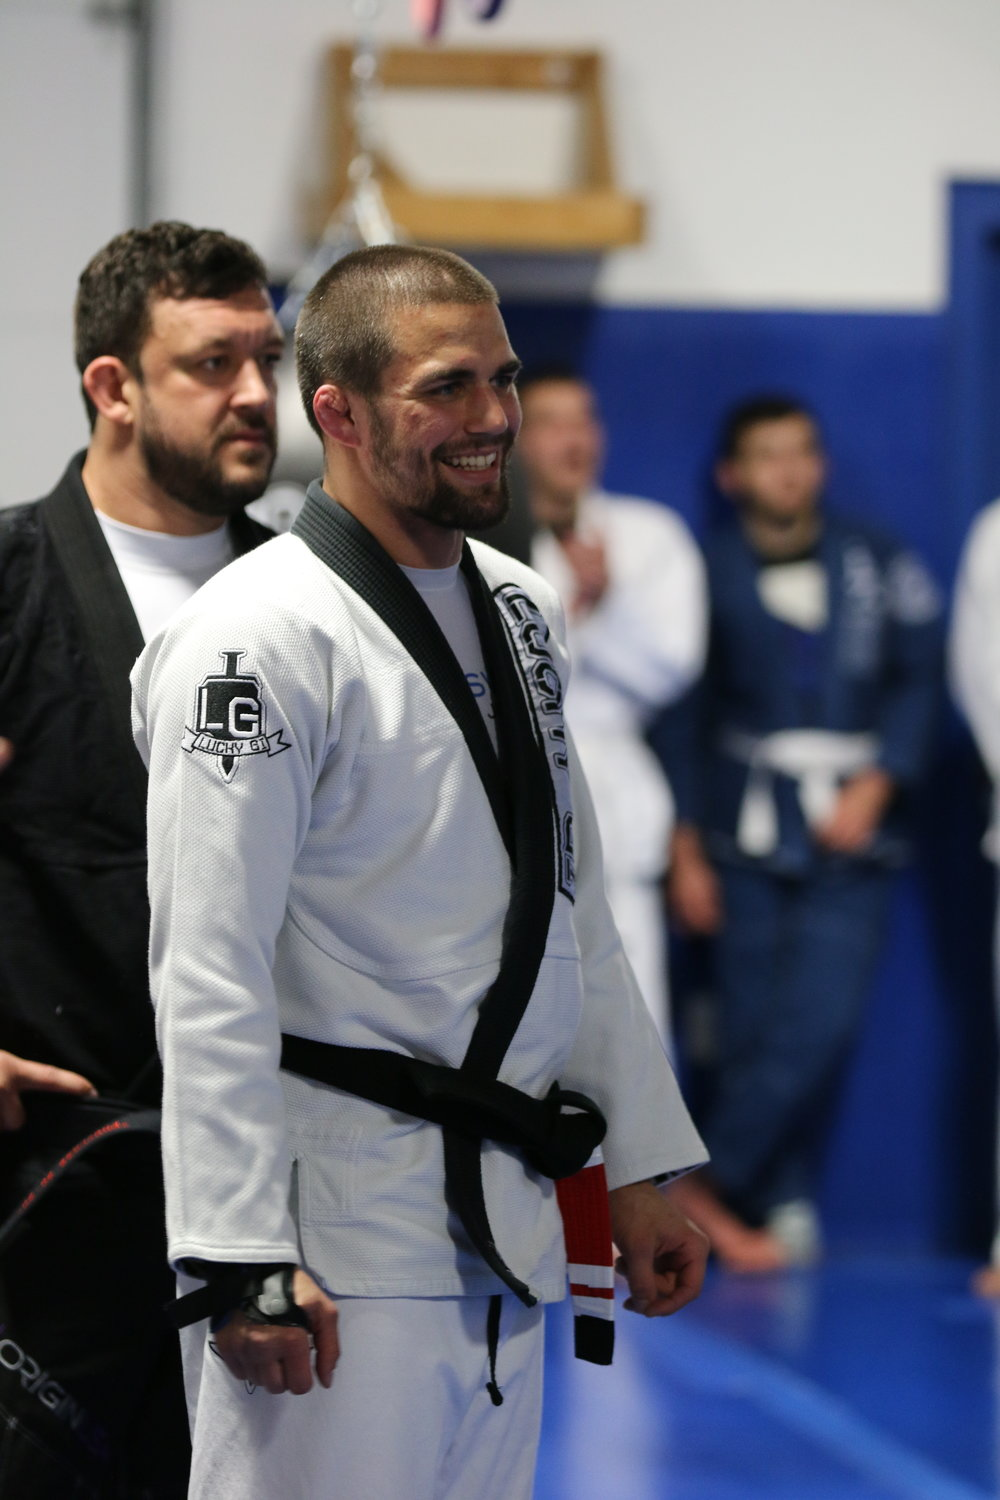 Garry Tonon, BJJ Black Belt in Gi